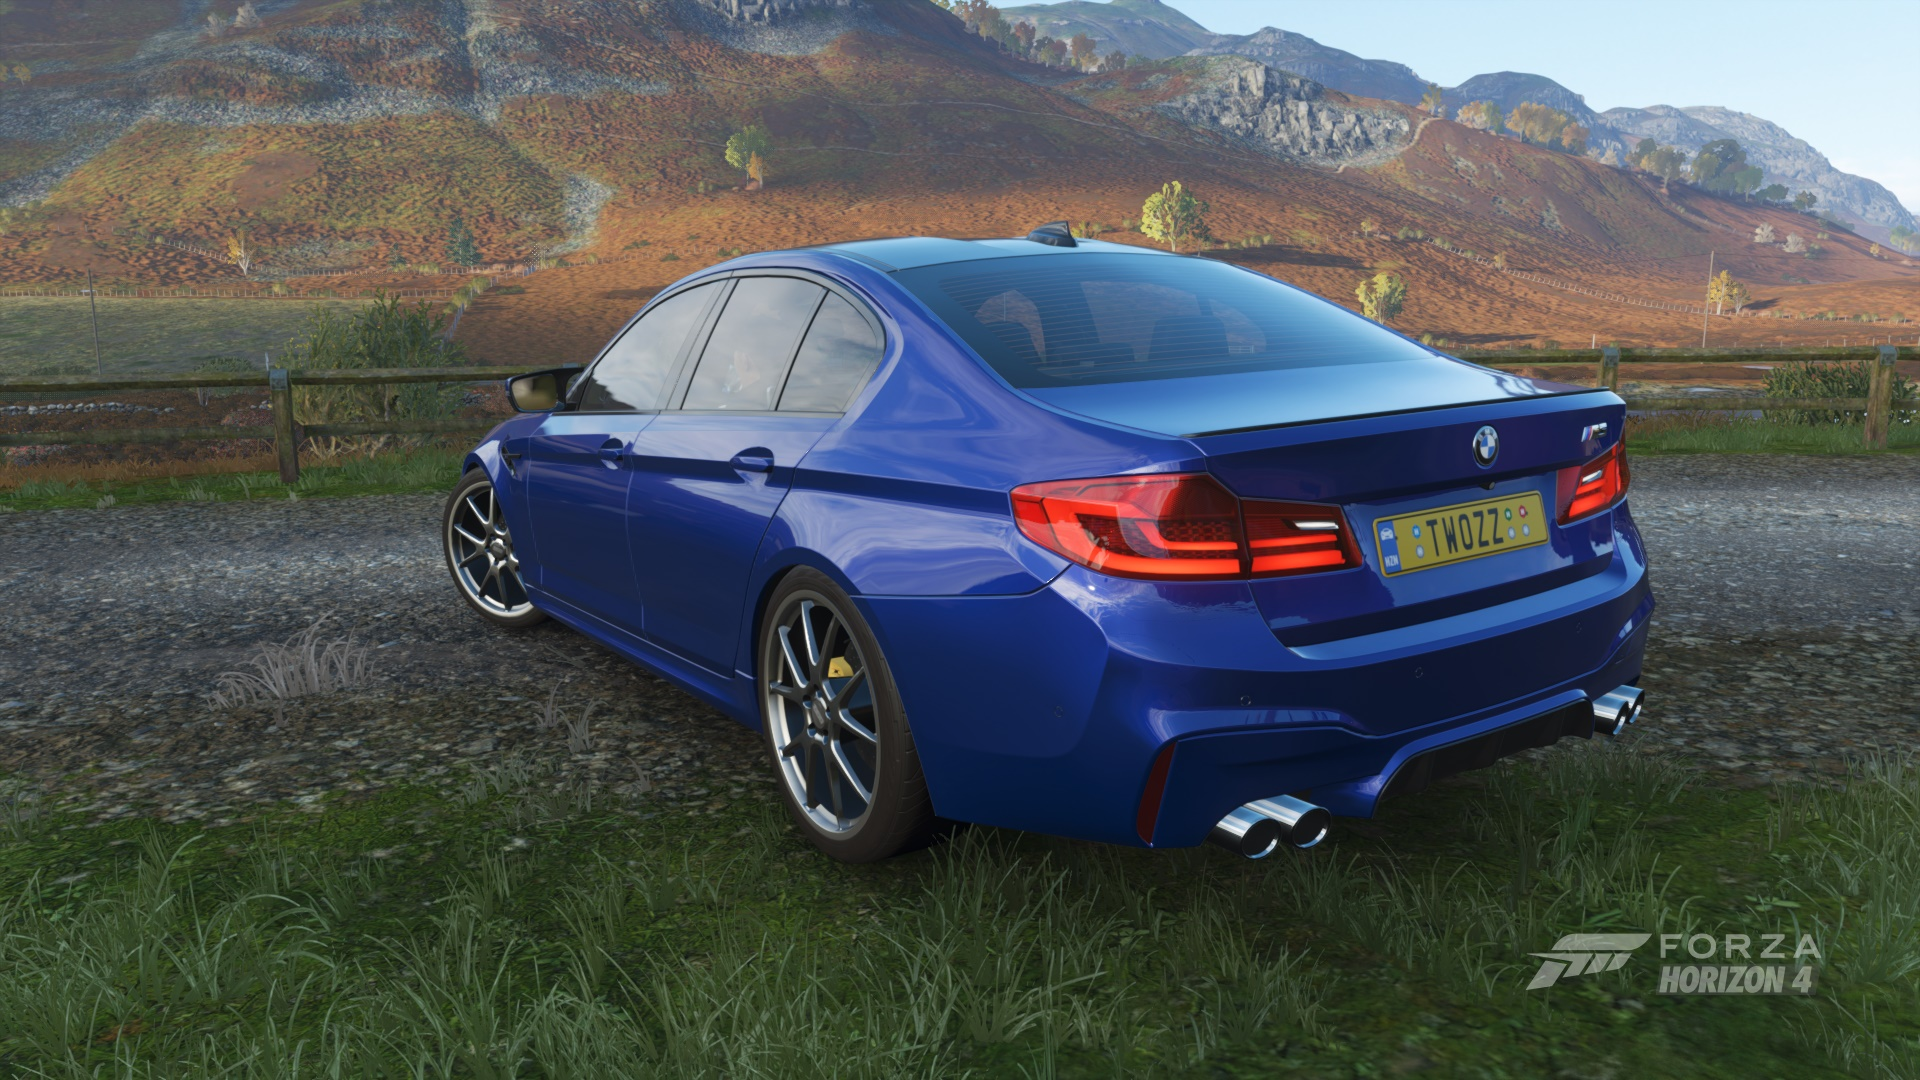 Forza Horizon 4 - ULTIMATE